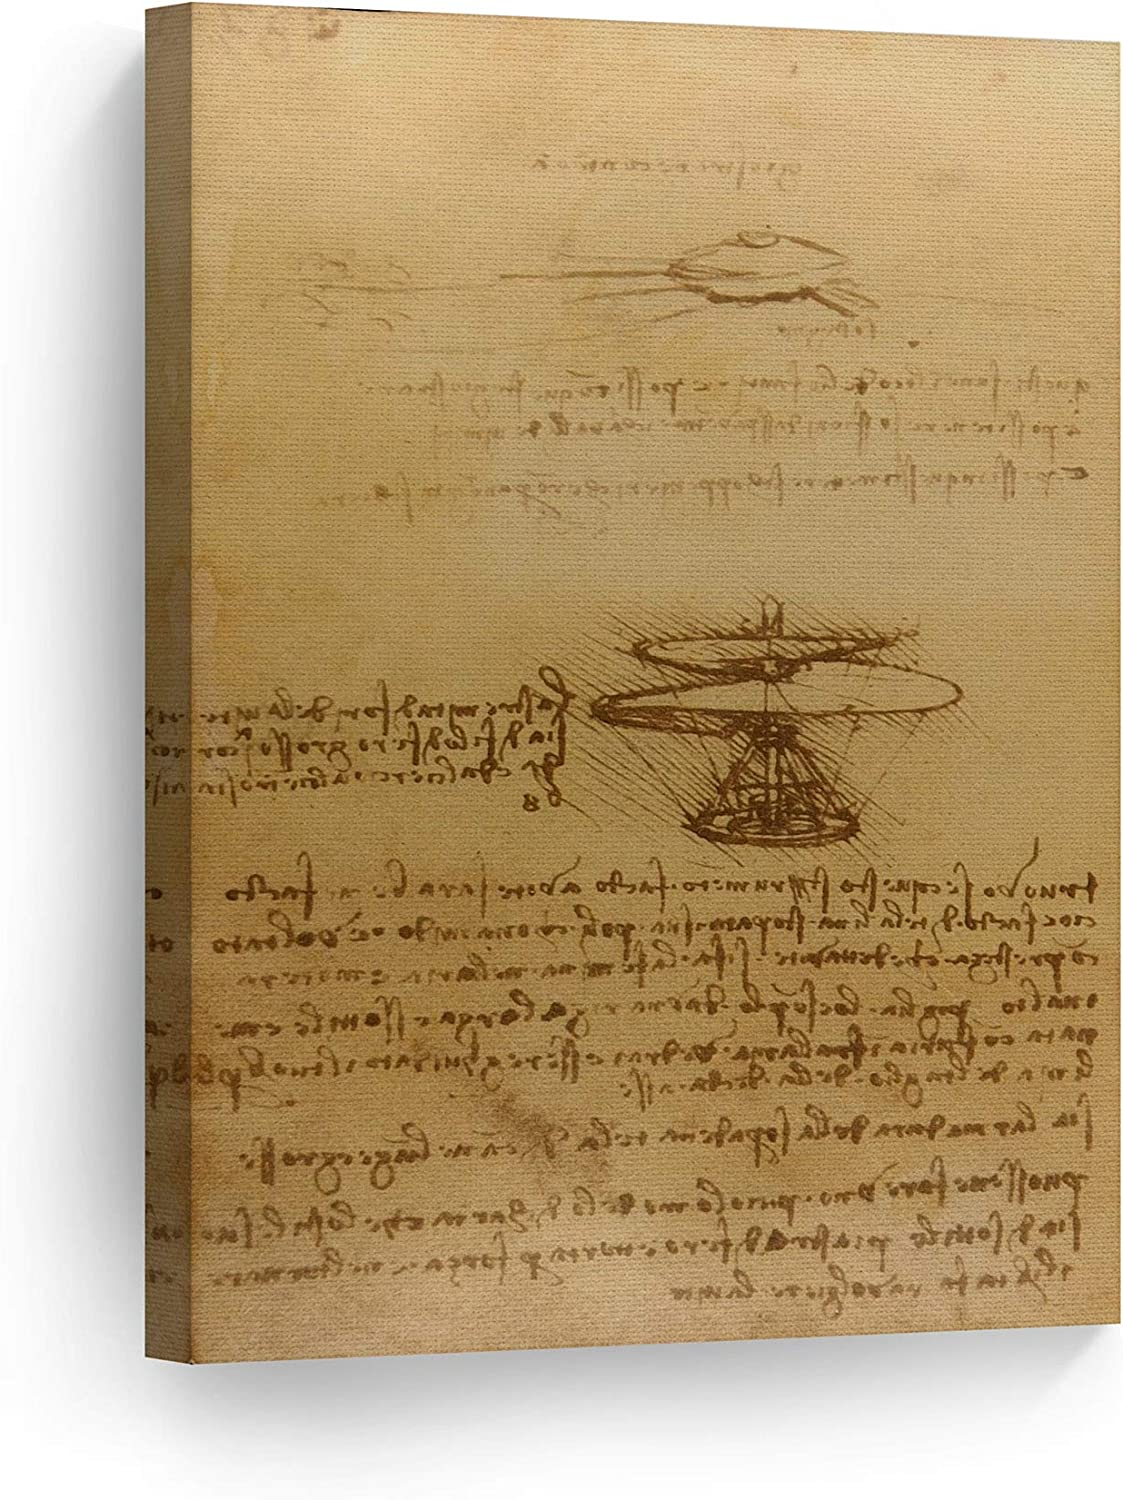 Smile Art Design Helicopter by Leonardo Da Vinci Canvas Wall Art Canvas Print Famous Art Painting Reproduction Fine Art Home Decor Ready to Hang- Made in USA- 12x8